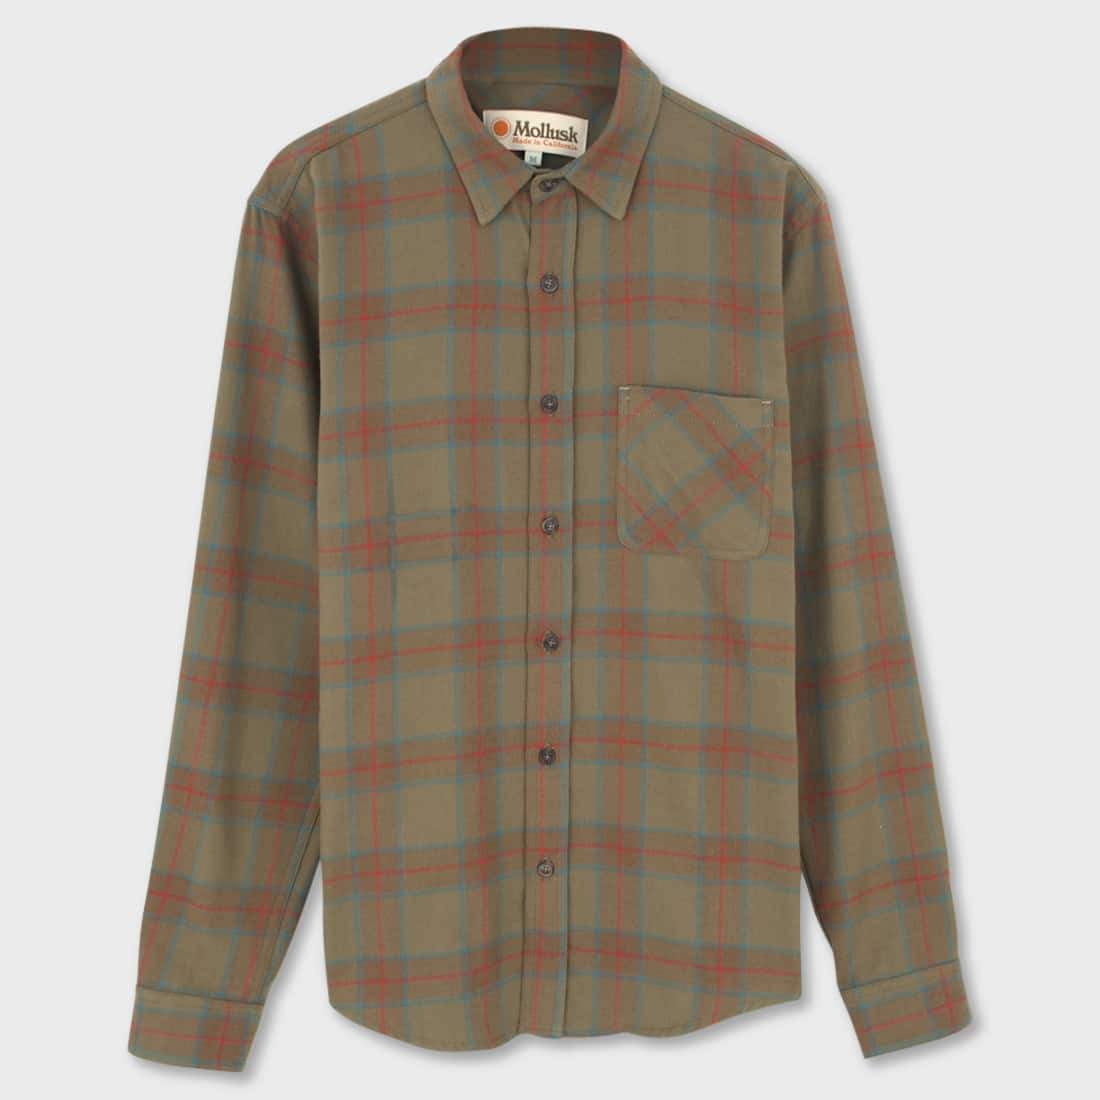 Mollusk One Pocket Shirt Tobacco Plaid